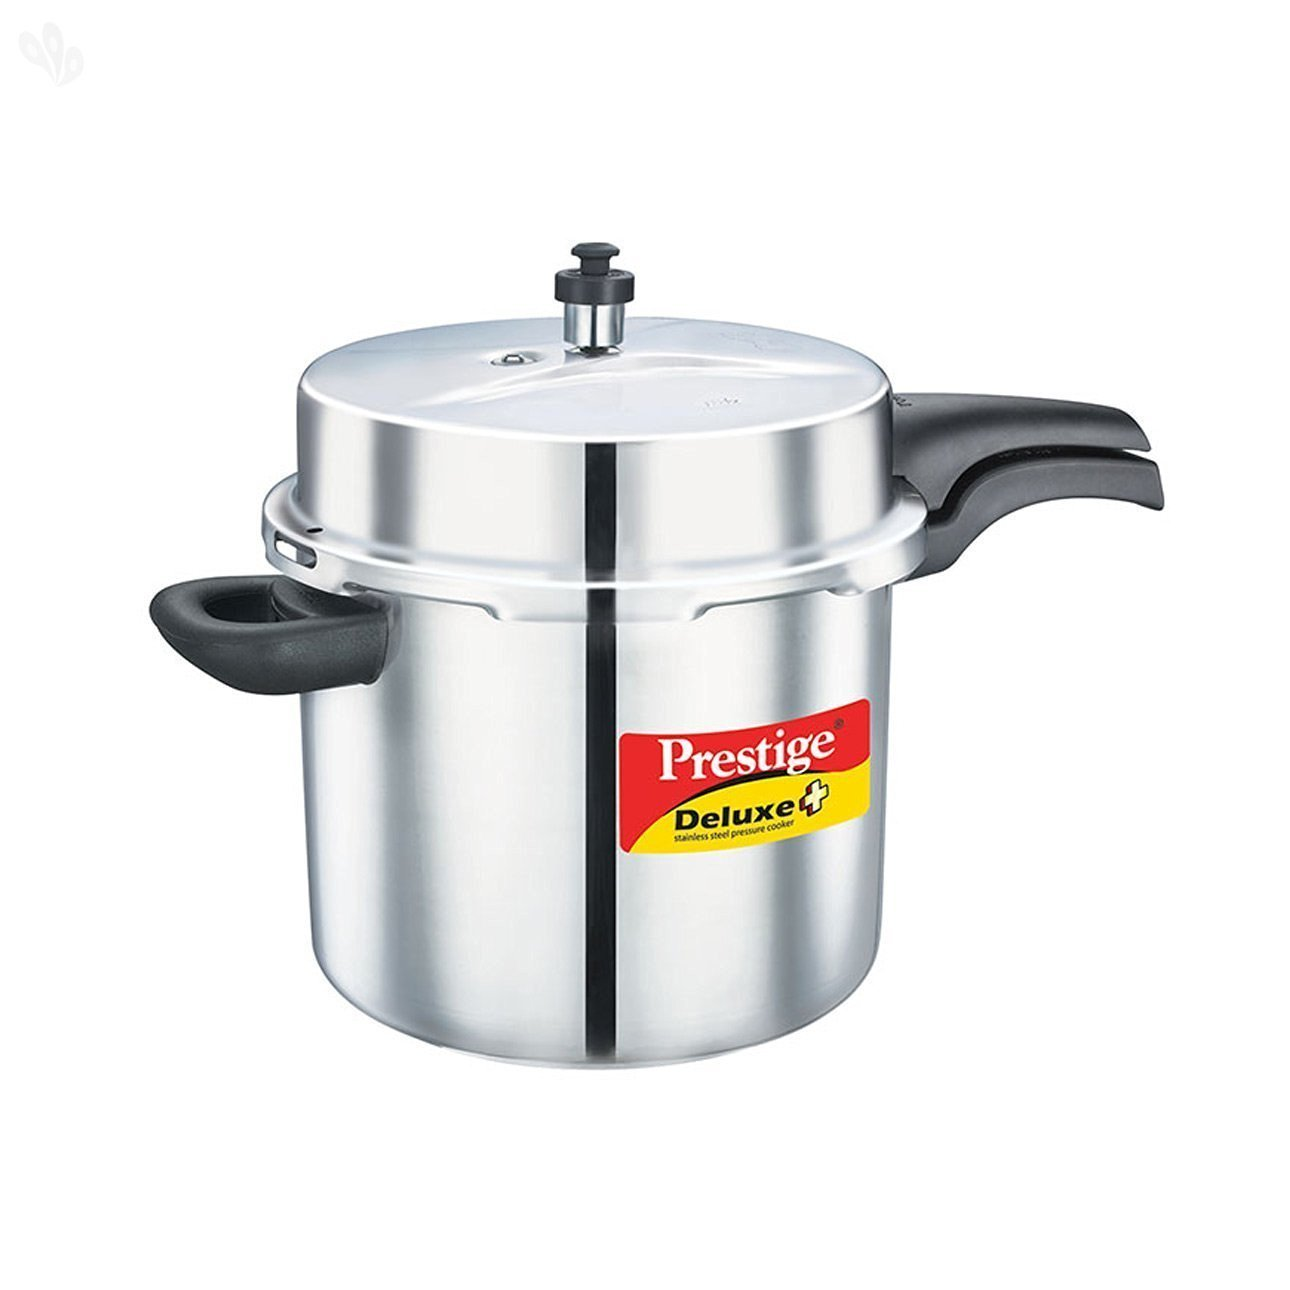 Prestige 10-Liter Deluxe Alpha Induction Base Stainless Steel Pressure Cooker, Small, Silver by Prestige